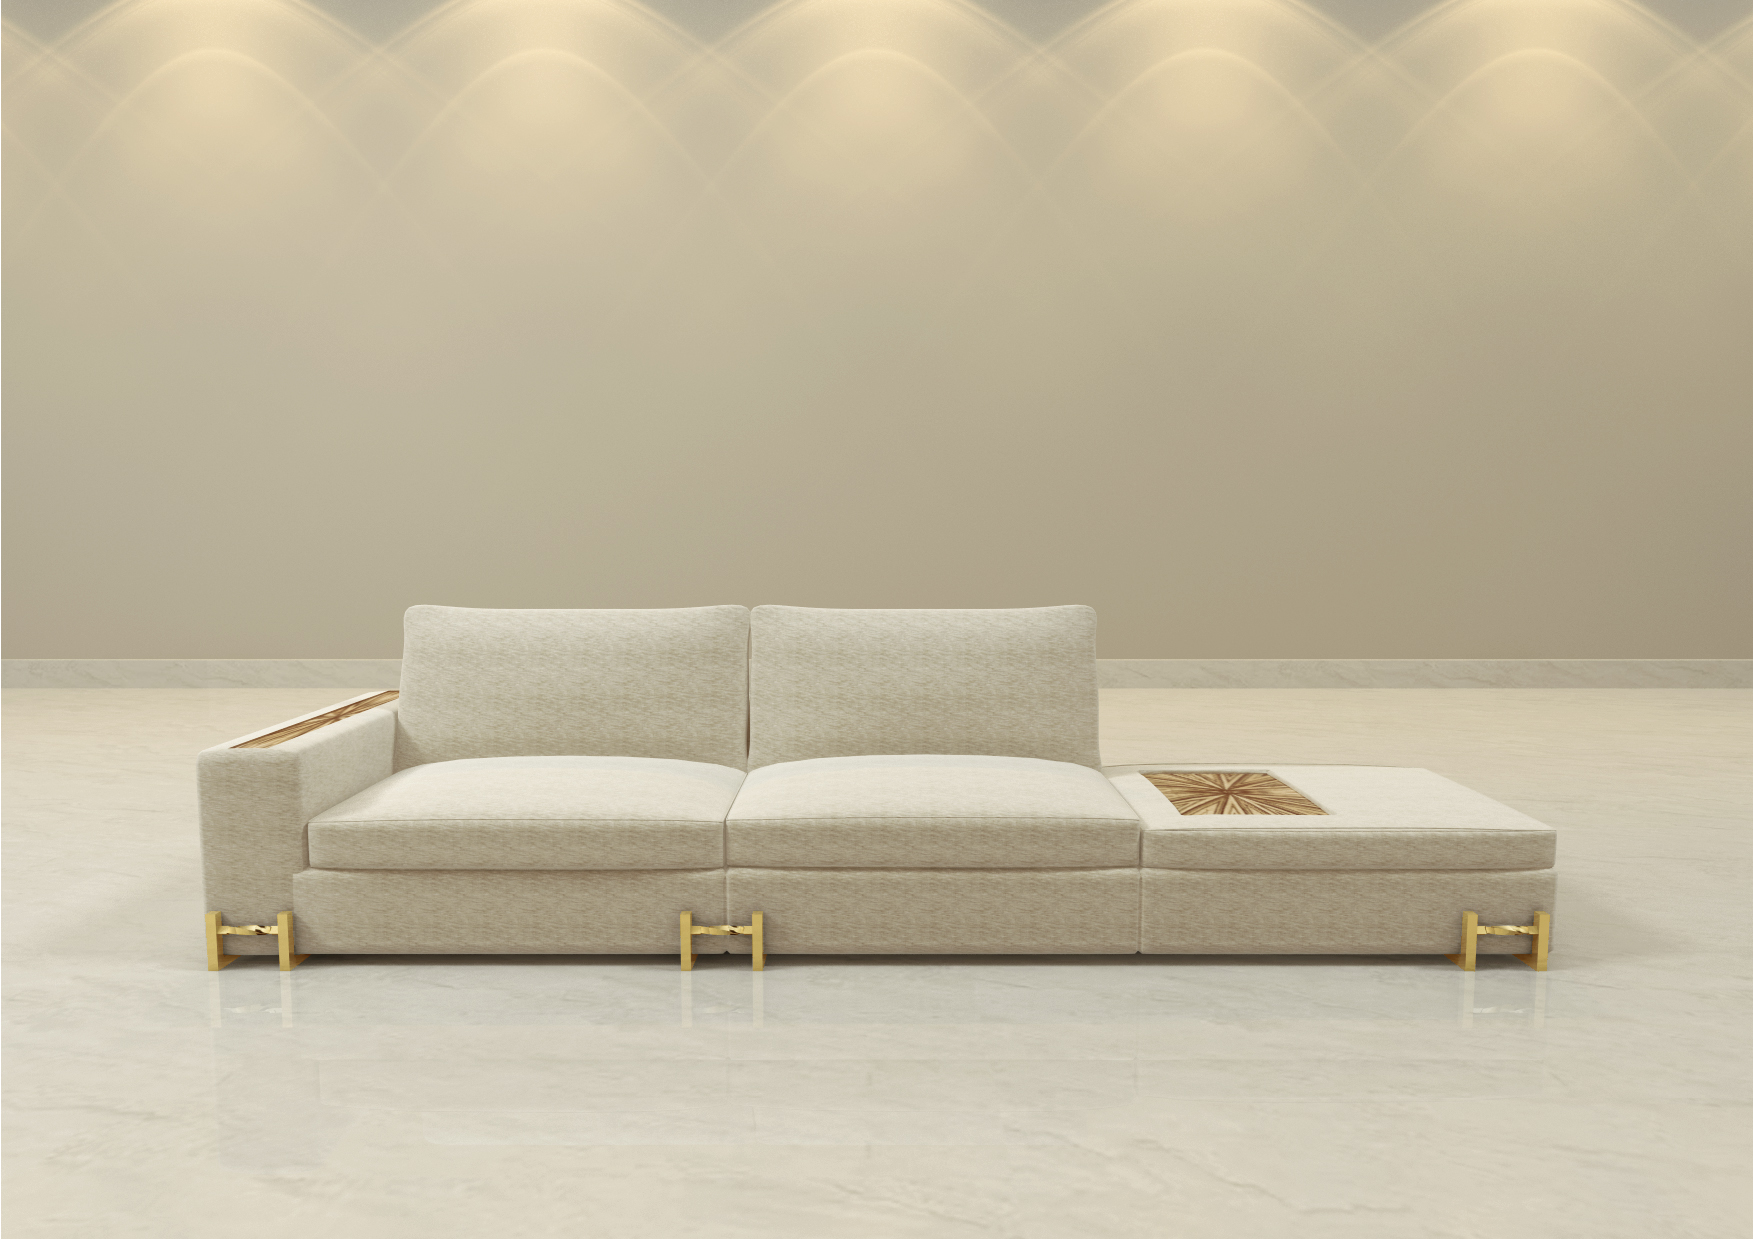 "The Plaza Legacy Sofa - Overall Dimensions: 129"" long x 37 1/2"" deep x 32"" tallPricing and more information contact us."